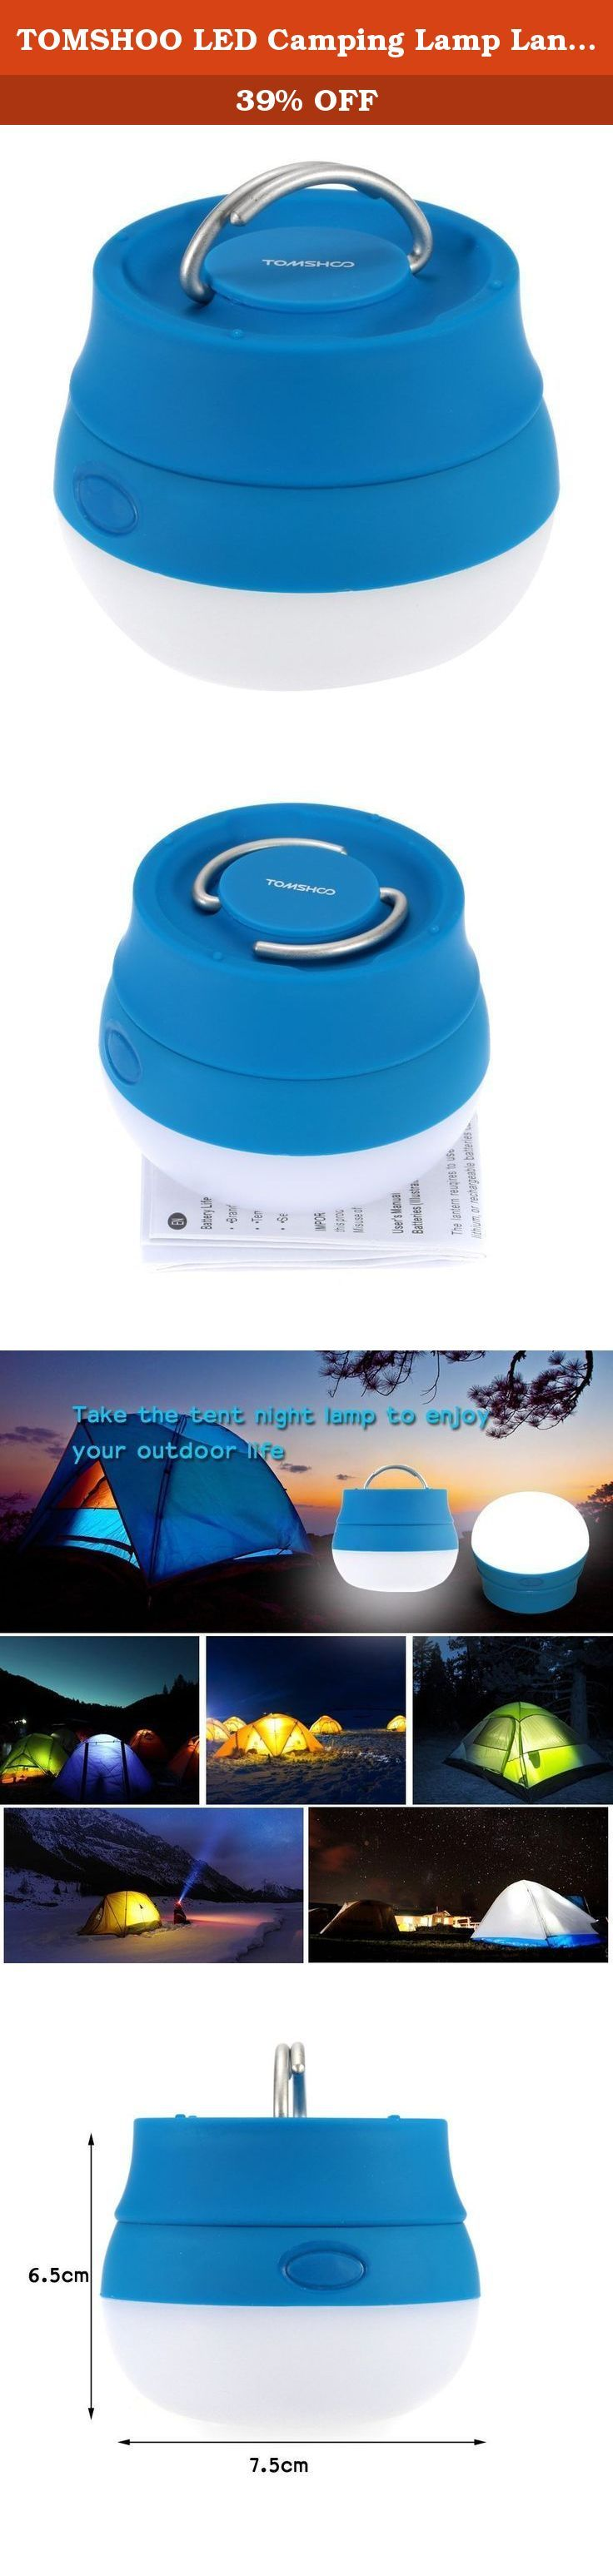 TOMSHOO LED Camping Lamp Lantern Outdoor Hiking Light Portable Tent Night Lamp with Handle. The camping lamp is lightweight and durable. It fits in the palm of your hand but lights up a room. Features: Lightweight, compact and durable. Suitable for camping, reading, fishing, car repairs and other outdoor activities. Fits in the palm of your hand but lights up a room. Equipped with a flexible handle, easy to hang or carry around. Handle is perfect for hanging in your tent or any other area...